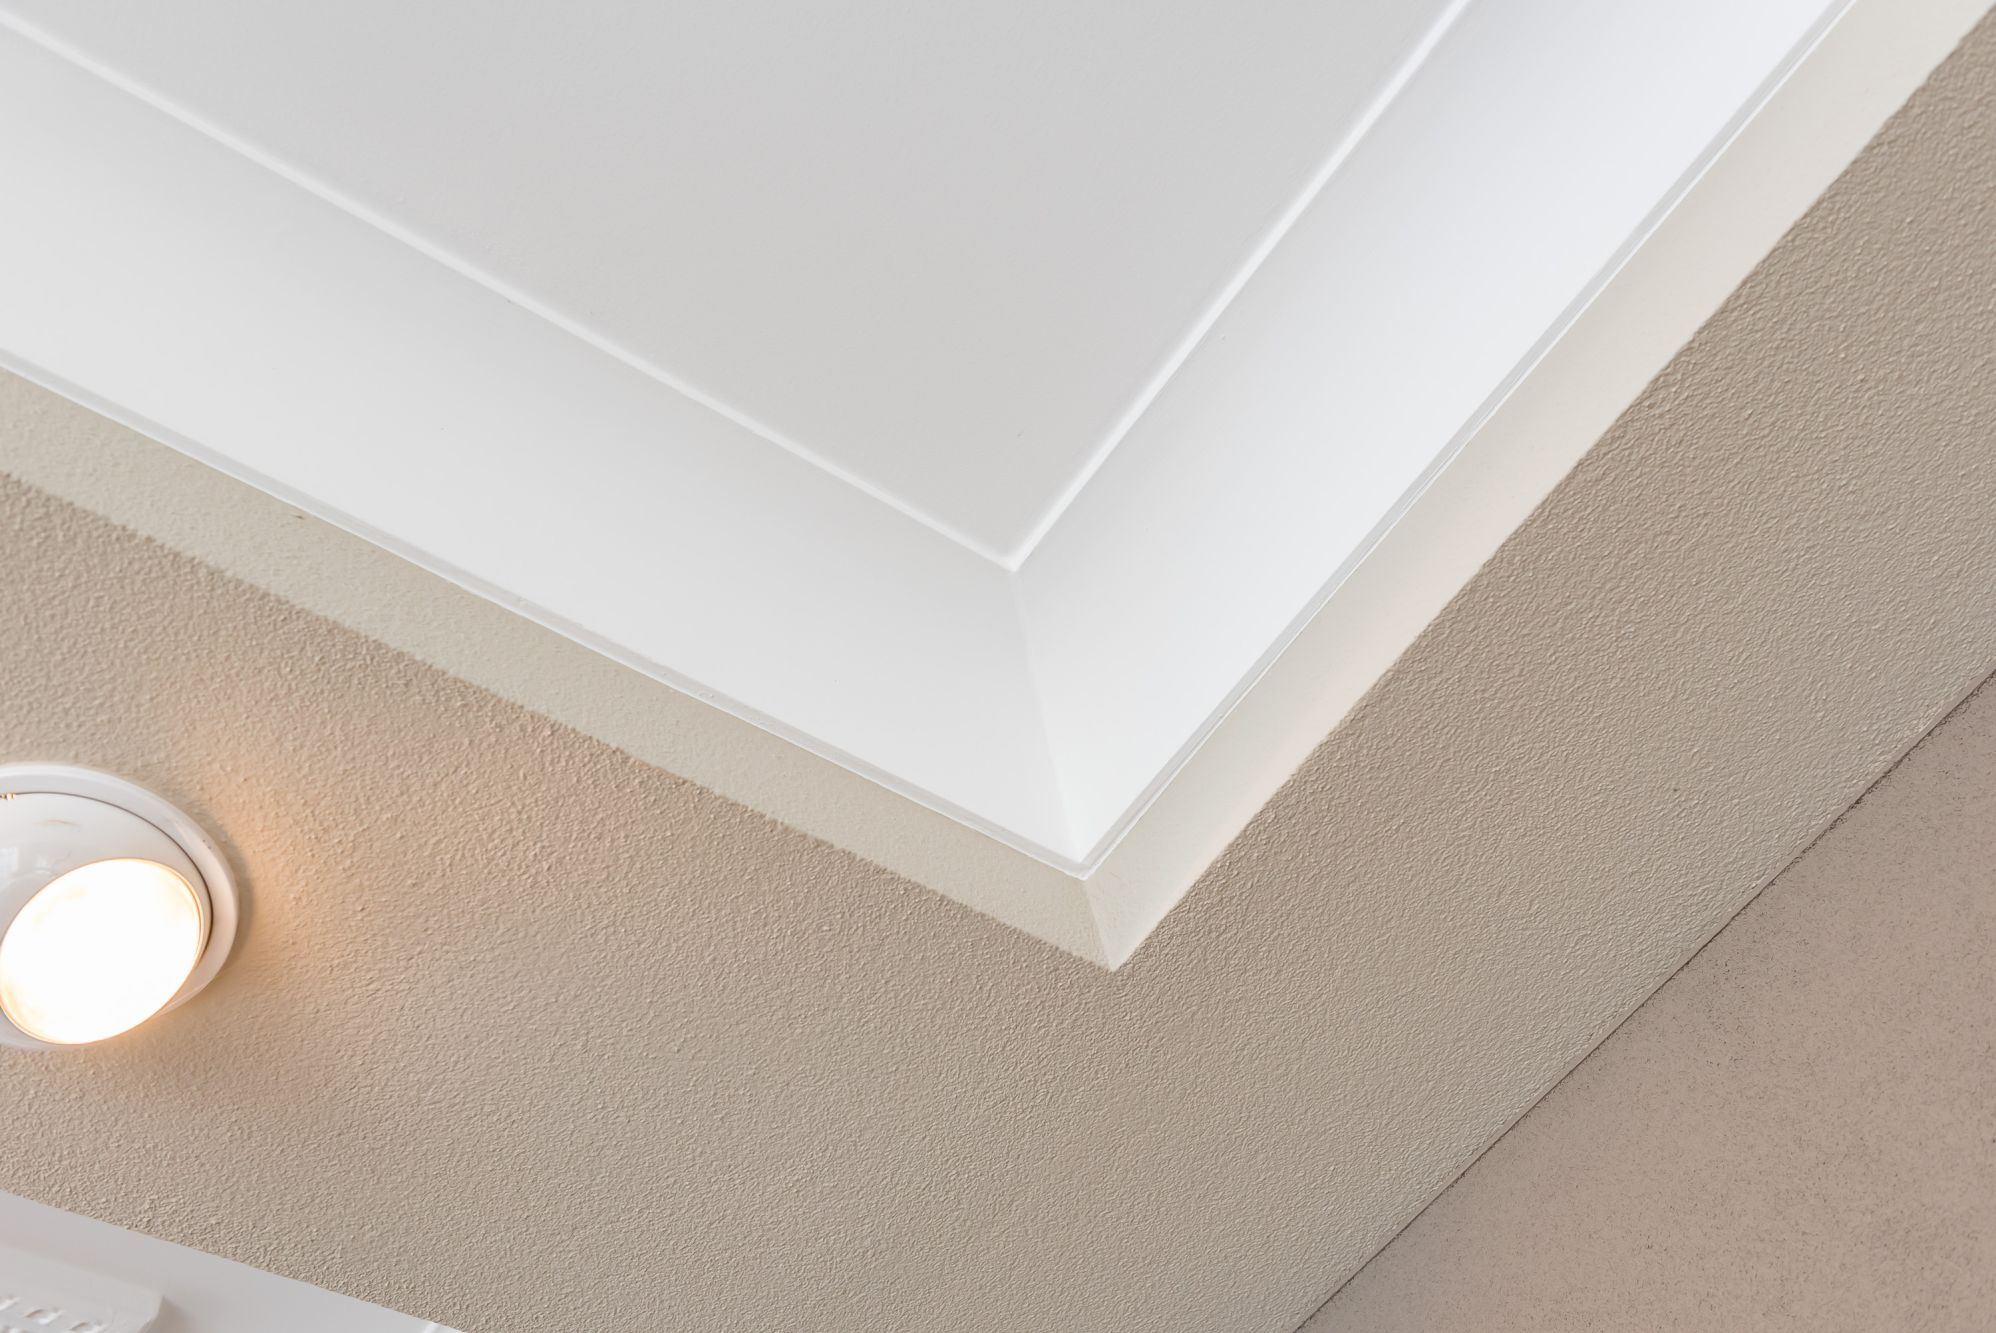 plafond glad stucwerk met holle plint en wand spachtelputz